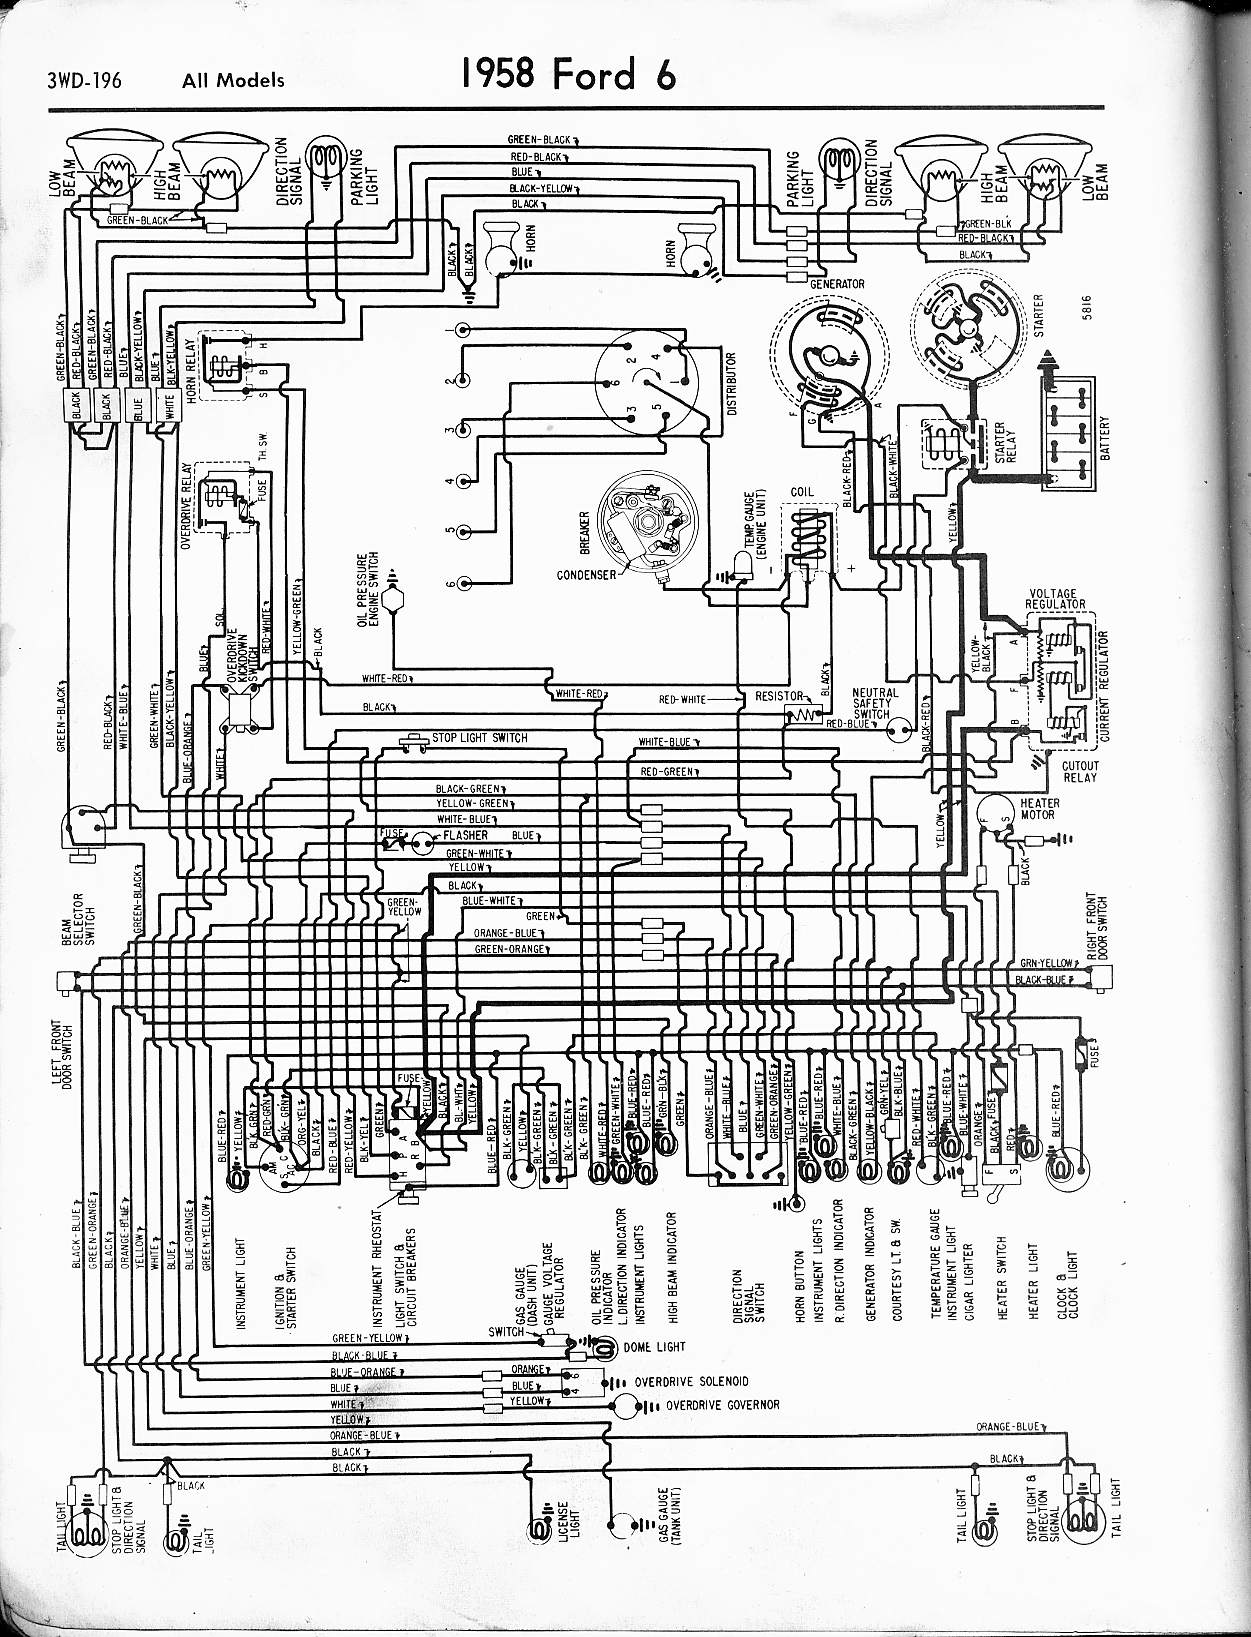 1983 Ford F100 Wiring Diagram Anything Diagrams F 150 57 65 Rh Oldcarmanualproject Com F150 Ignition Switch Schematic